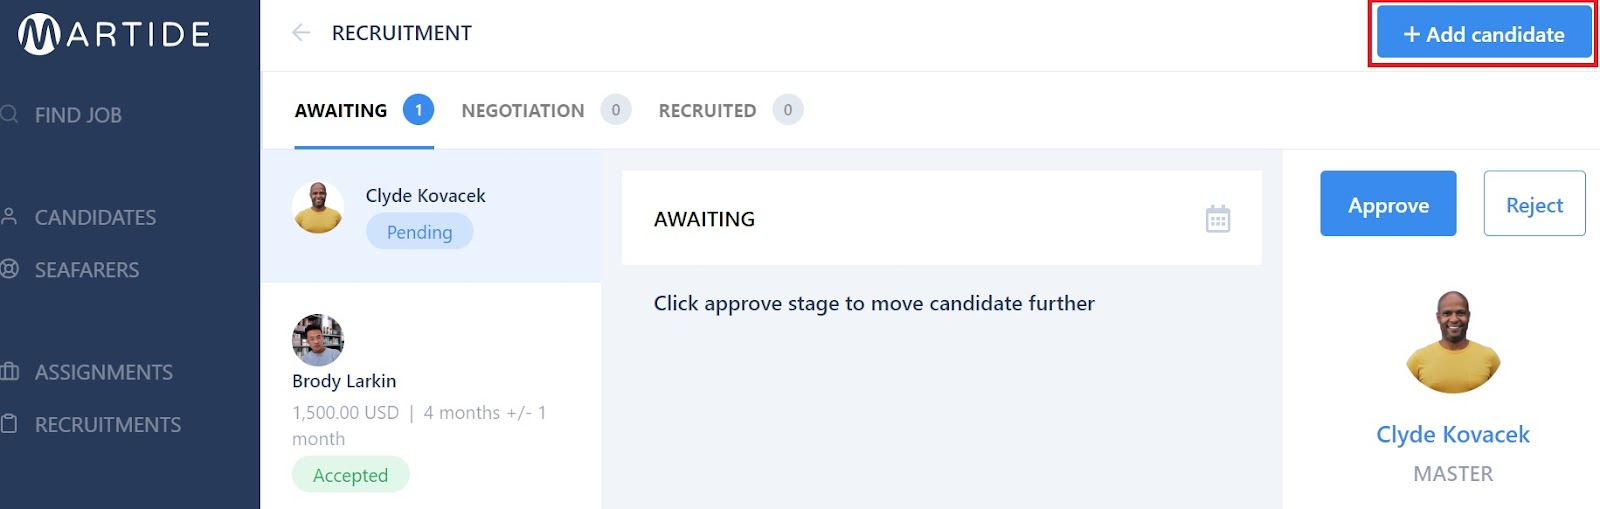 screenshot of the Martide website showing the add candidate button.